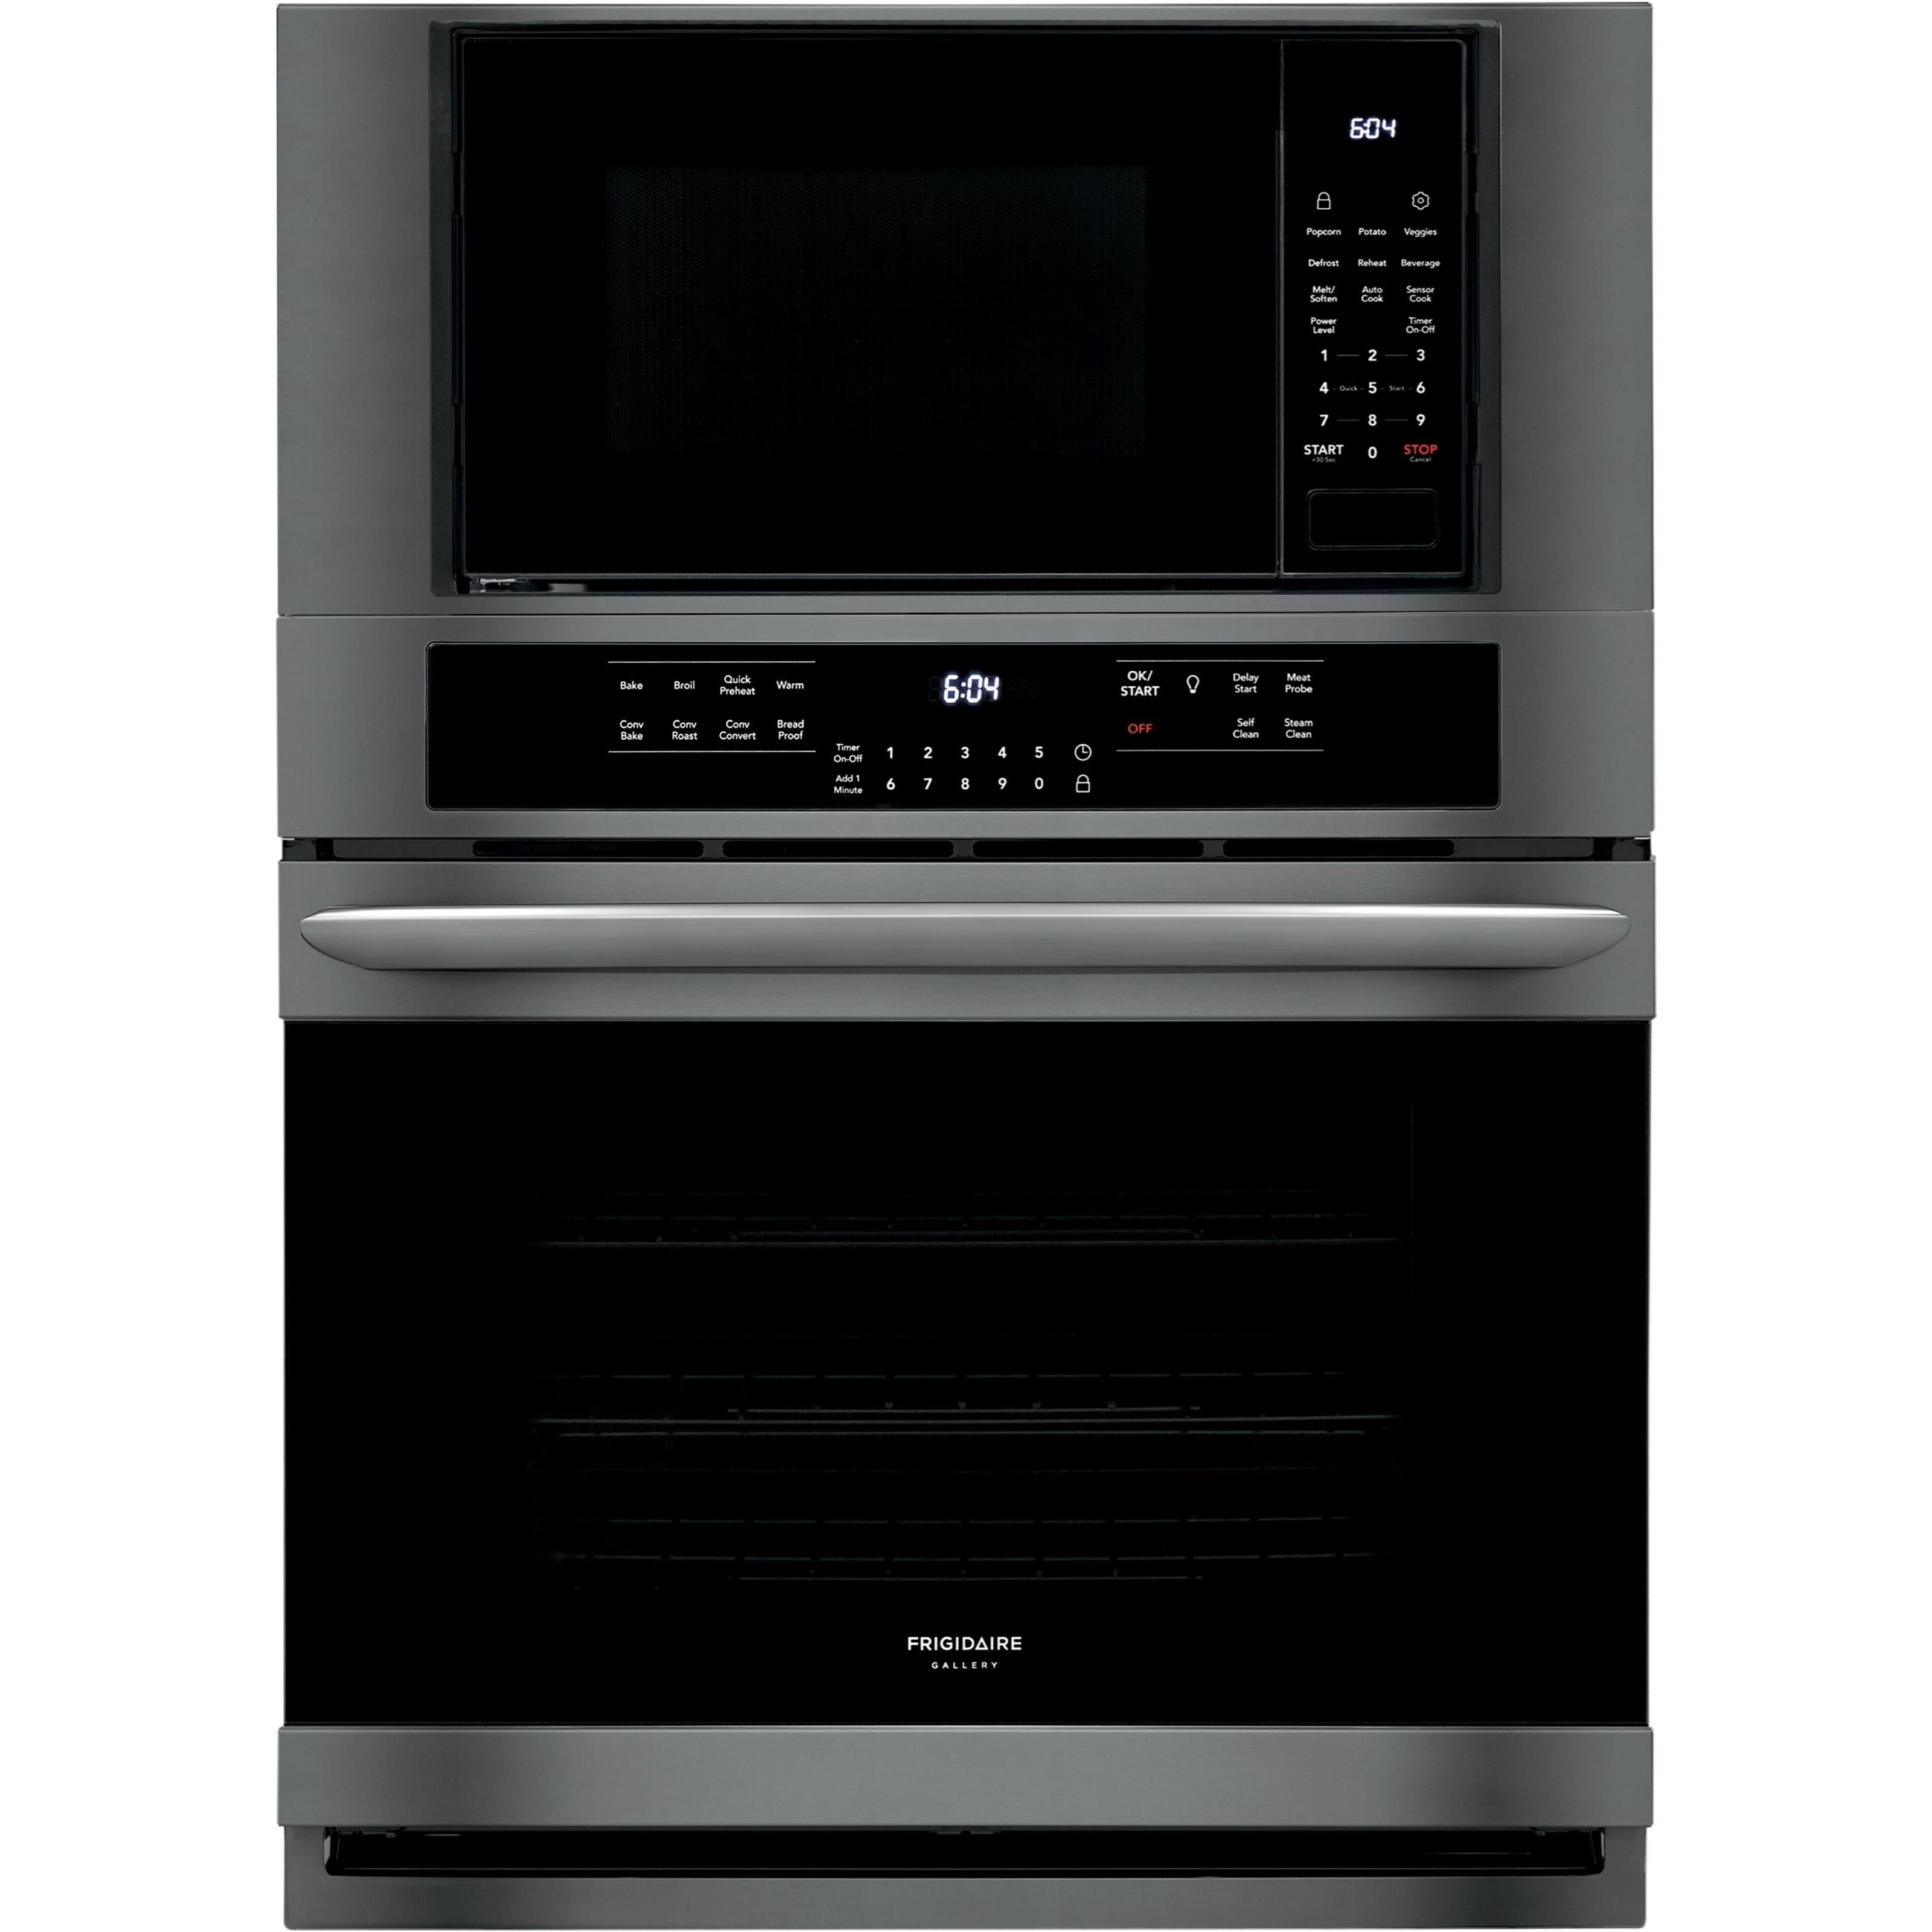 """Frigidaire Gallery Ovens 30"""" Electric Wall Oven/Microwave Combination by Frigidaire at Wilcox Furniture"""